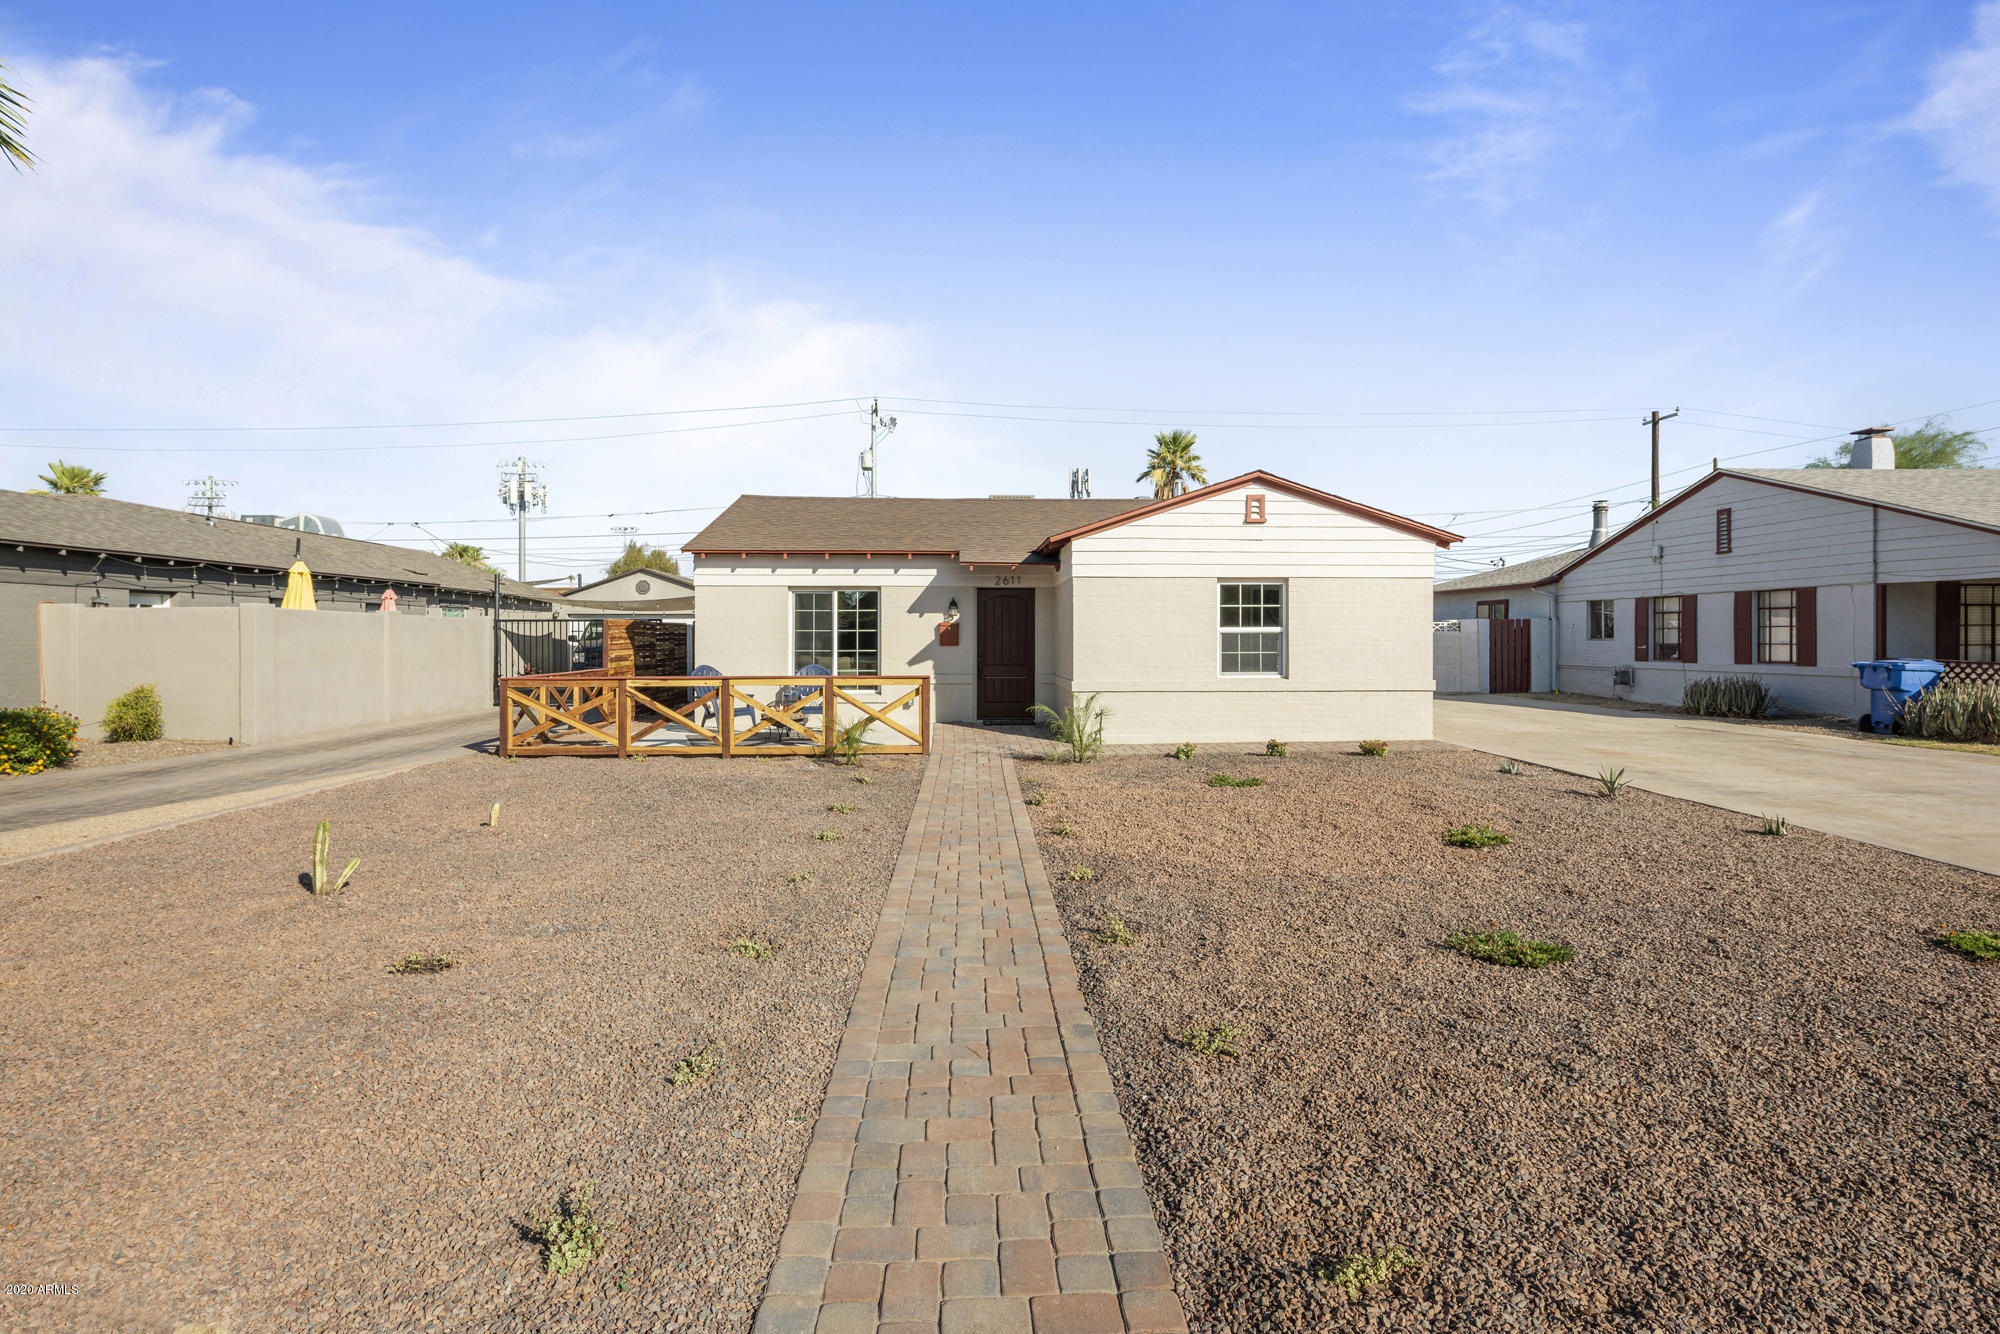 10TH Street, Phoenix, Arizona 85006, 3 Bedrooms Bedrooms, ,2 BathroomsBathrooms,Residential,For Sale,10TH,6150369